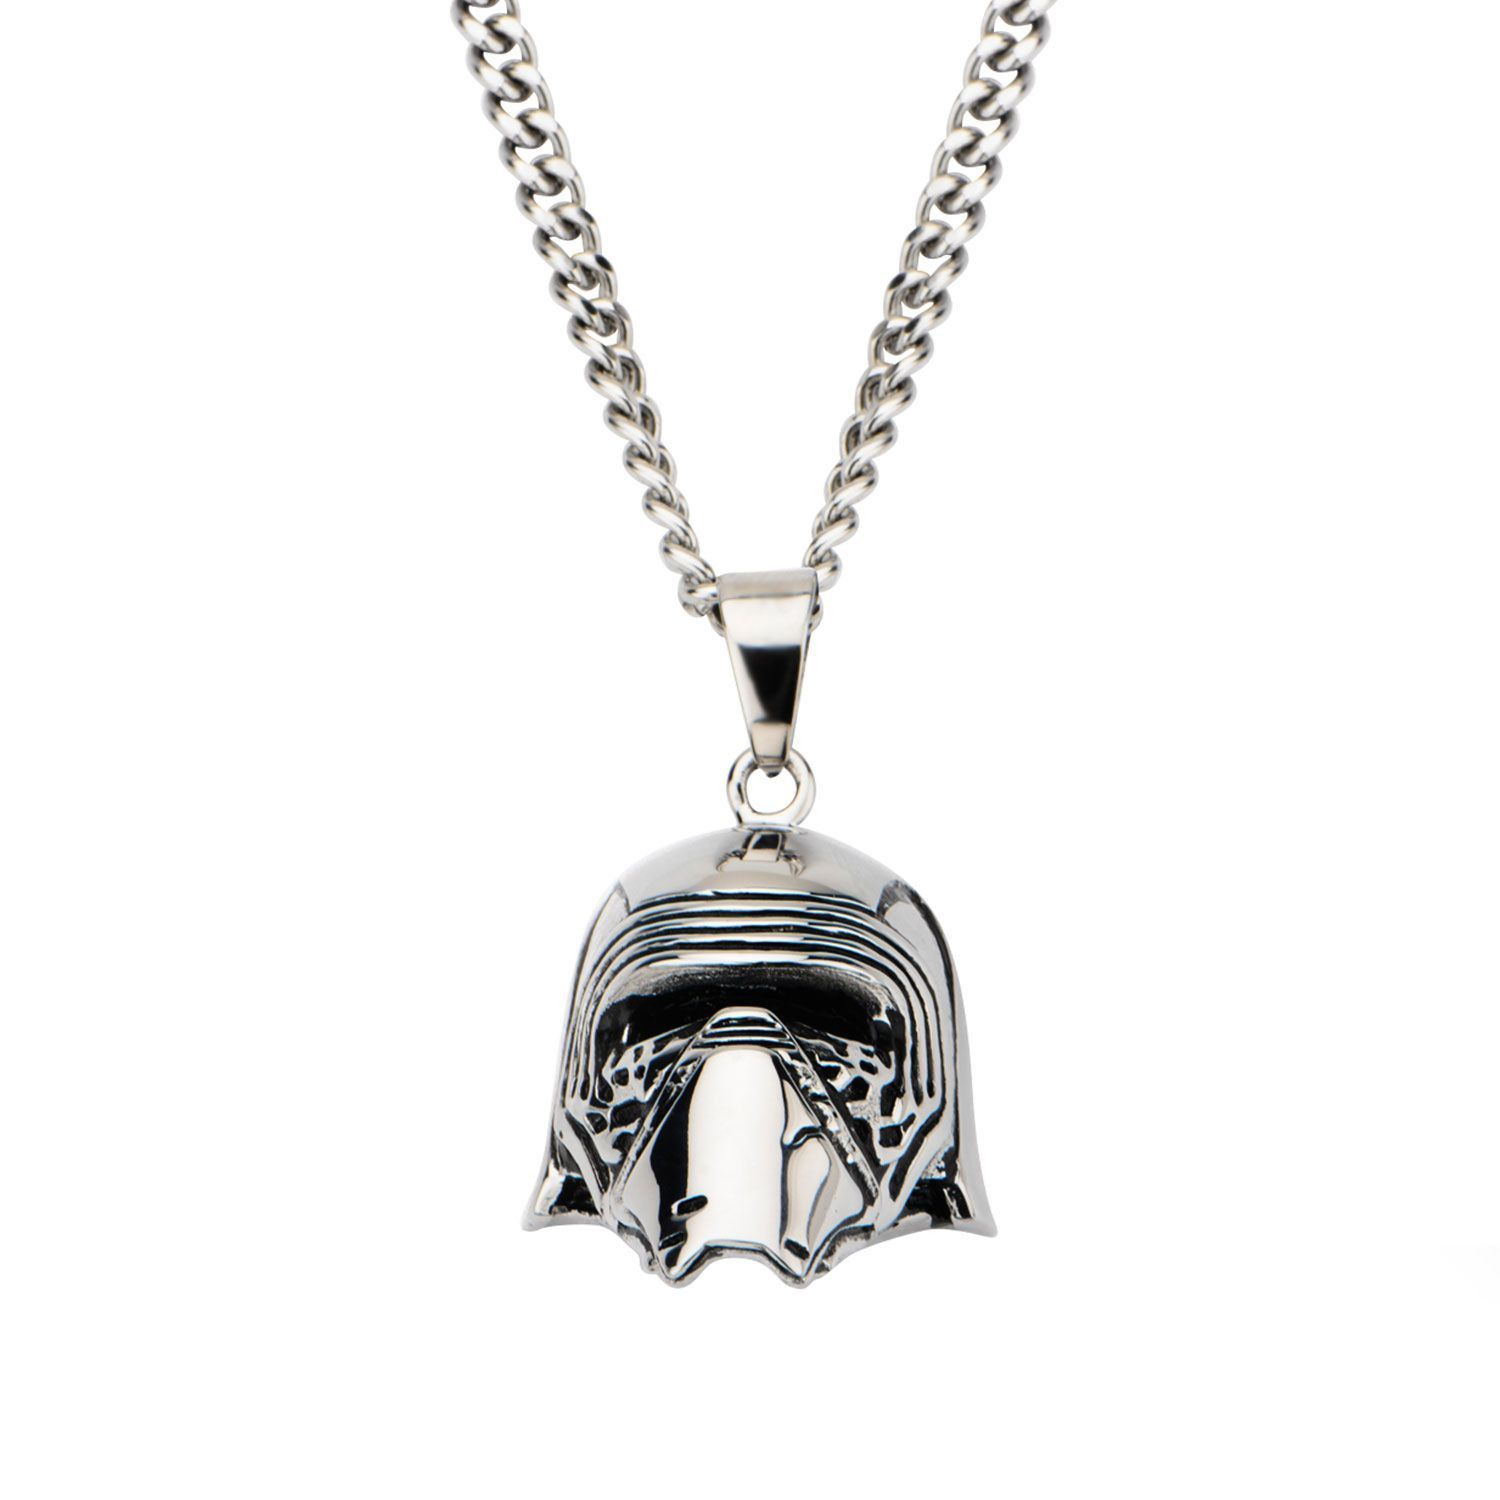 Star Wars Kylo Ren 3D Pendant With Chain 316 Stainless